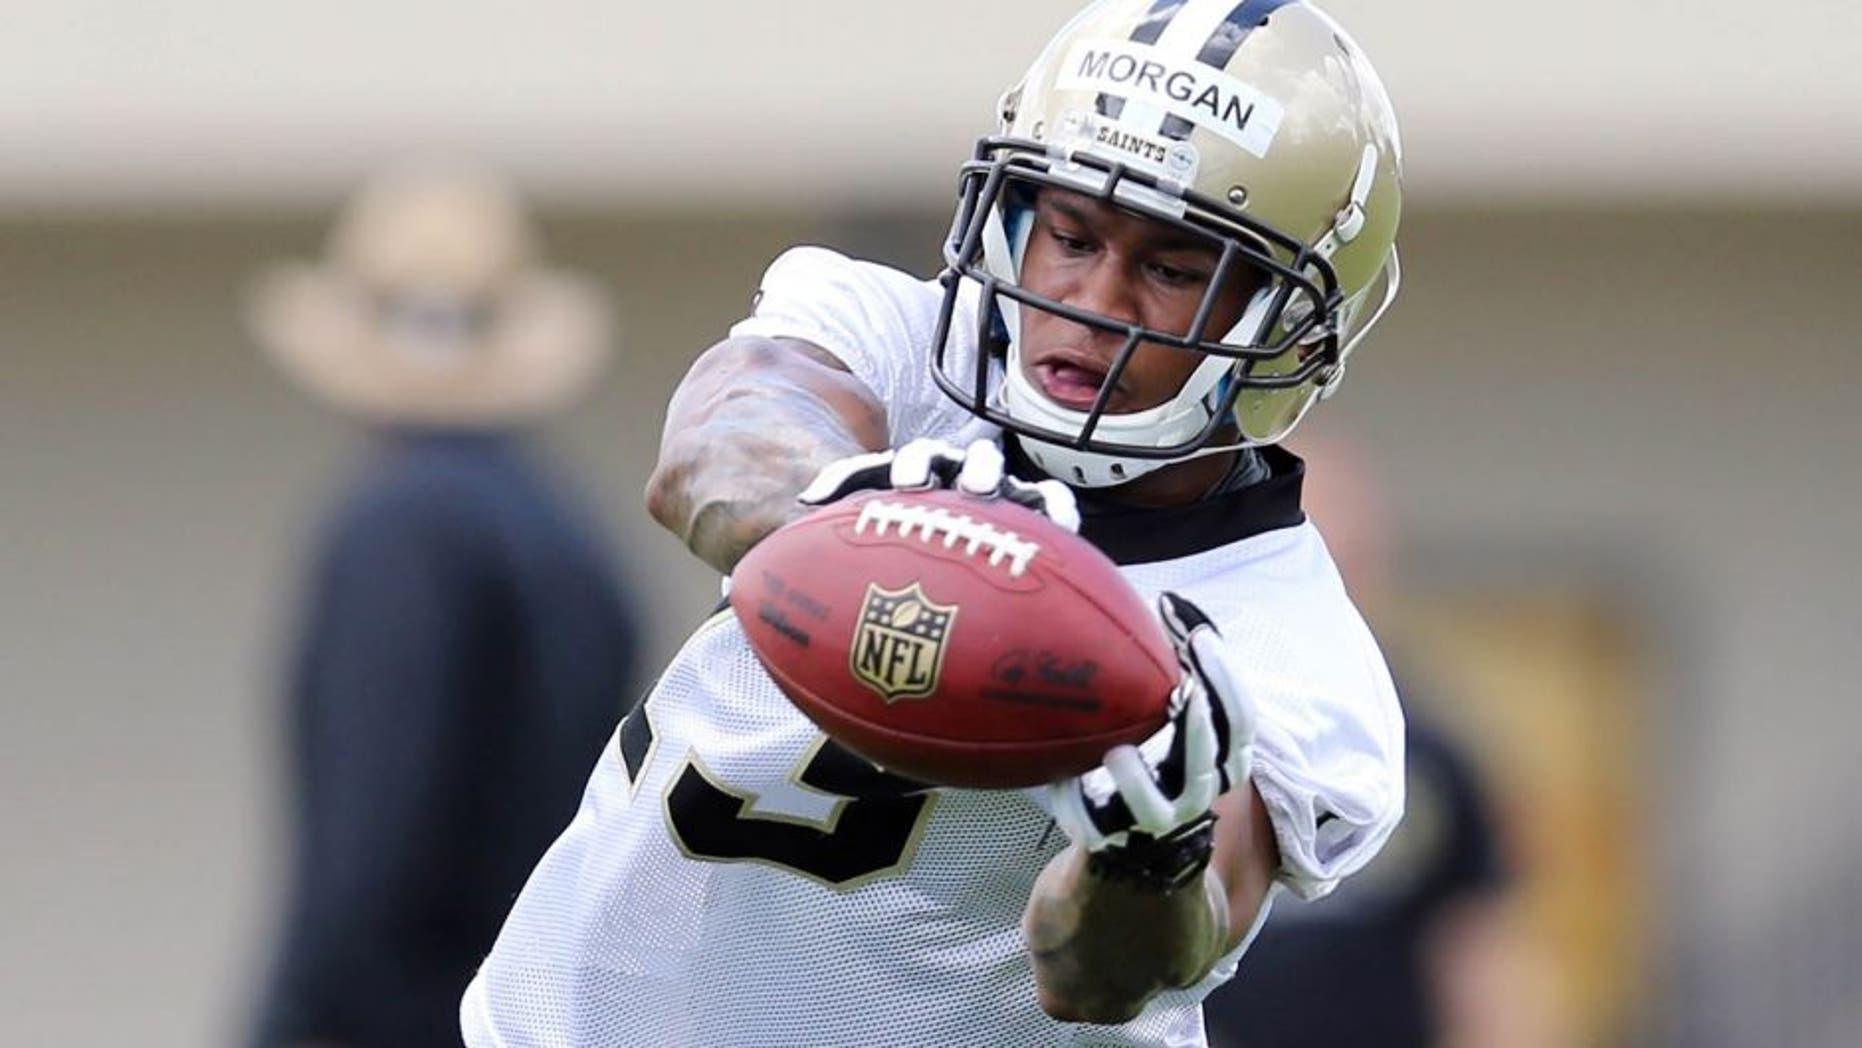 Jun 4, 2013; New Orleans, LA, USA; New Orleans Saints wide receiver Joseph Morgan (13) makes a catch during the team's first minicamp practice at the Saints practice facility. Mandatory Credit: Chuck Cook-USA TODAY Sports